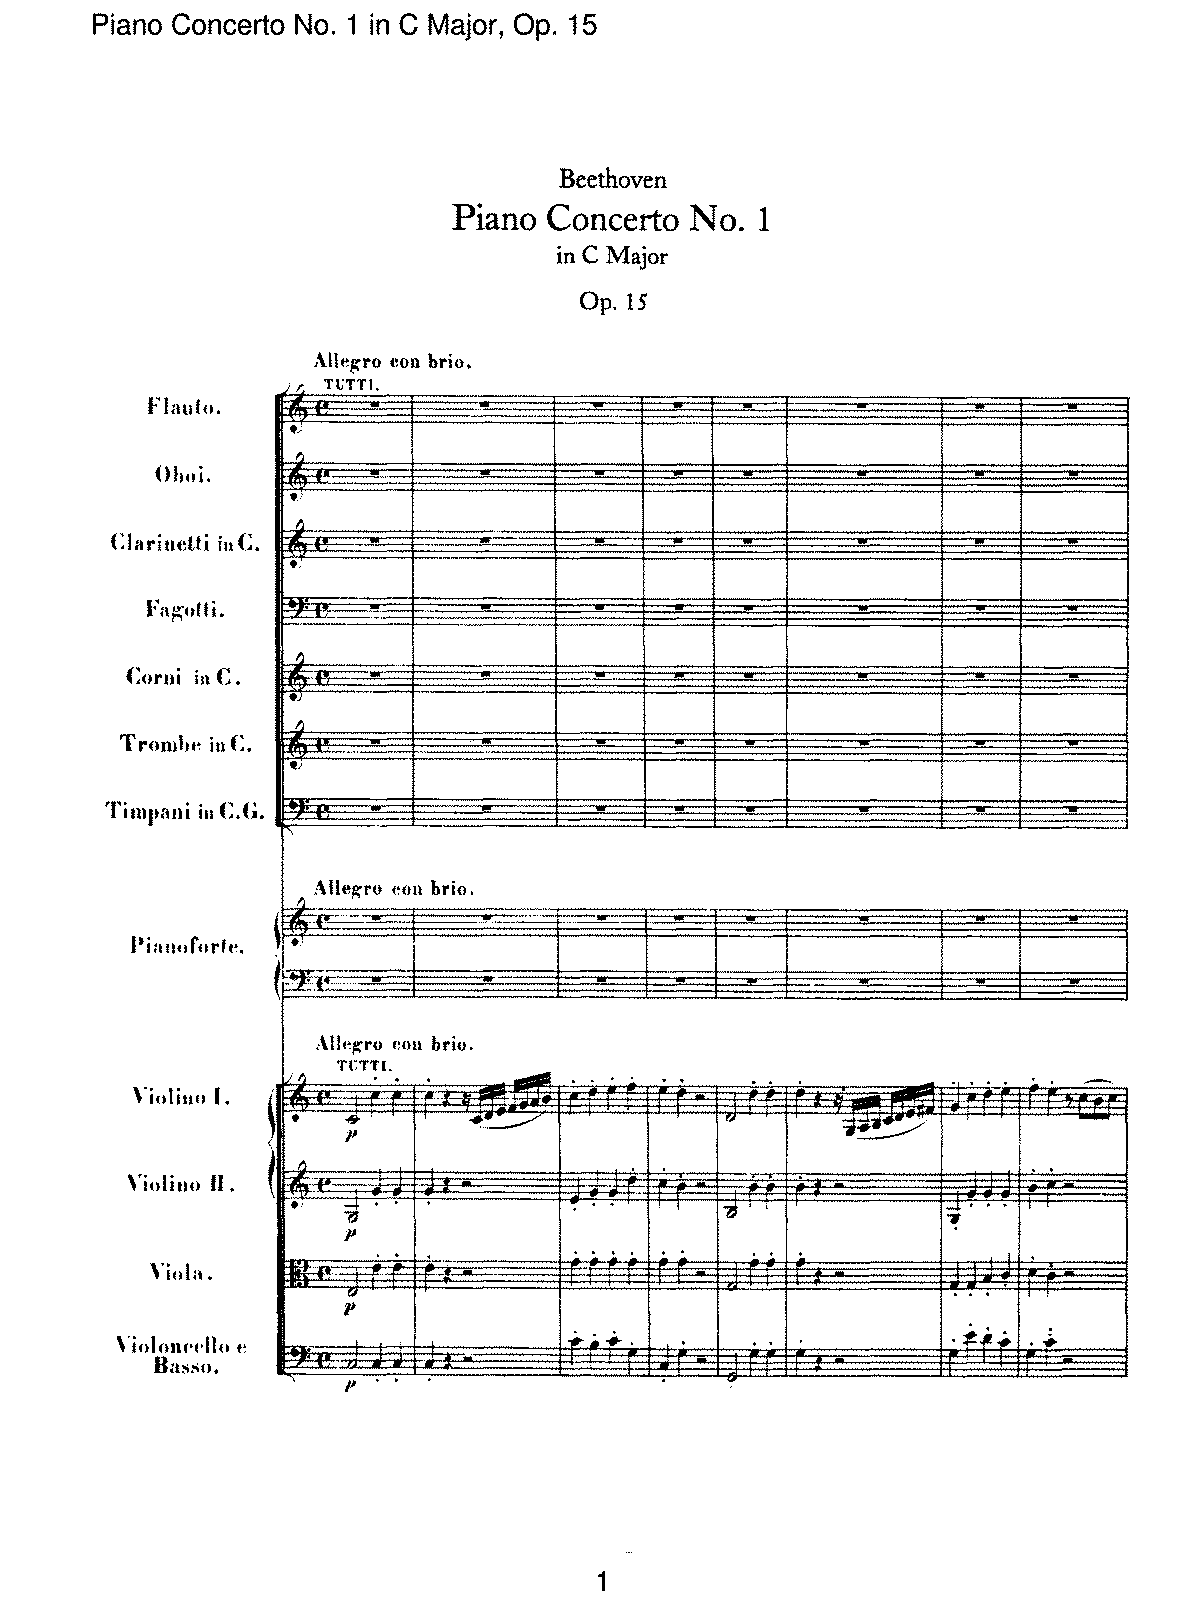 PMLP04230-IMSLP01275-Piano Concerto No. 1 in C Major Op. 15-I. Allegro con brio with bar numbers and rehearsal marks.pdf